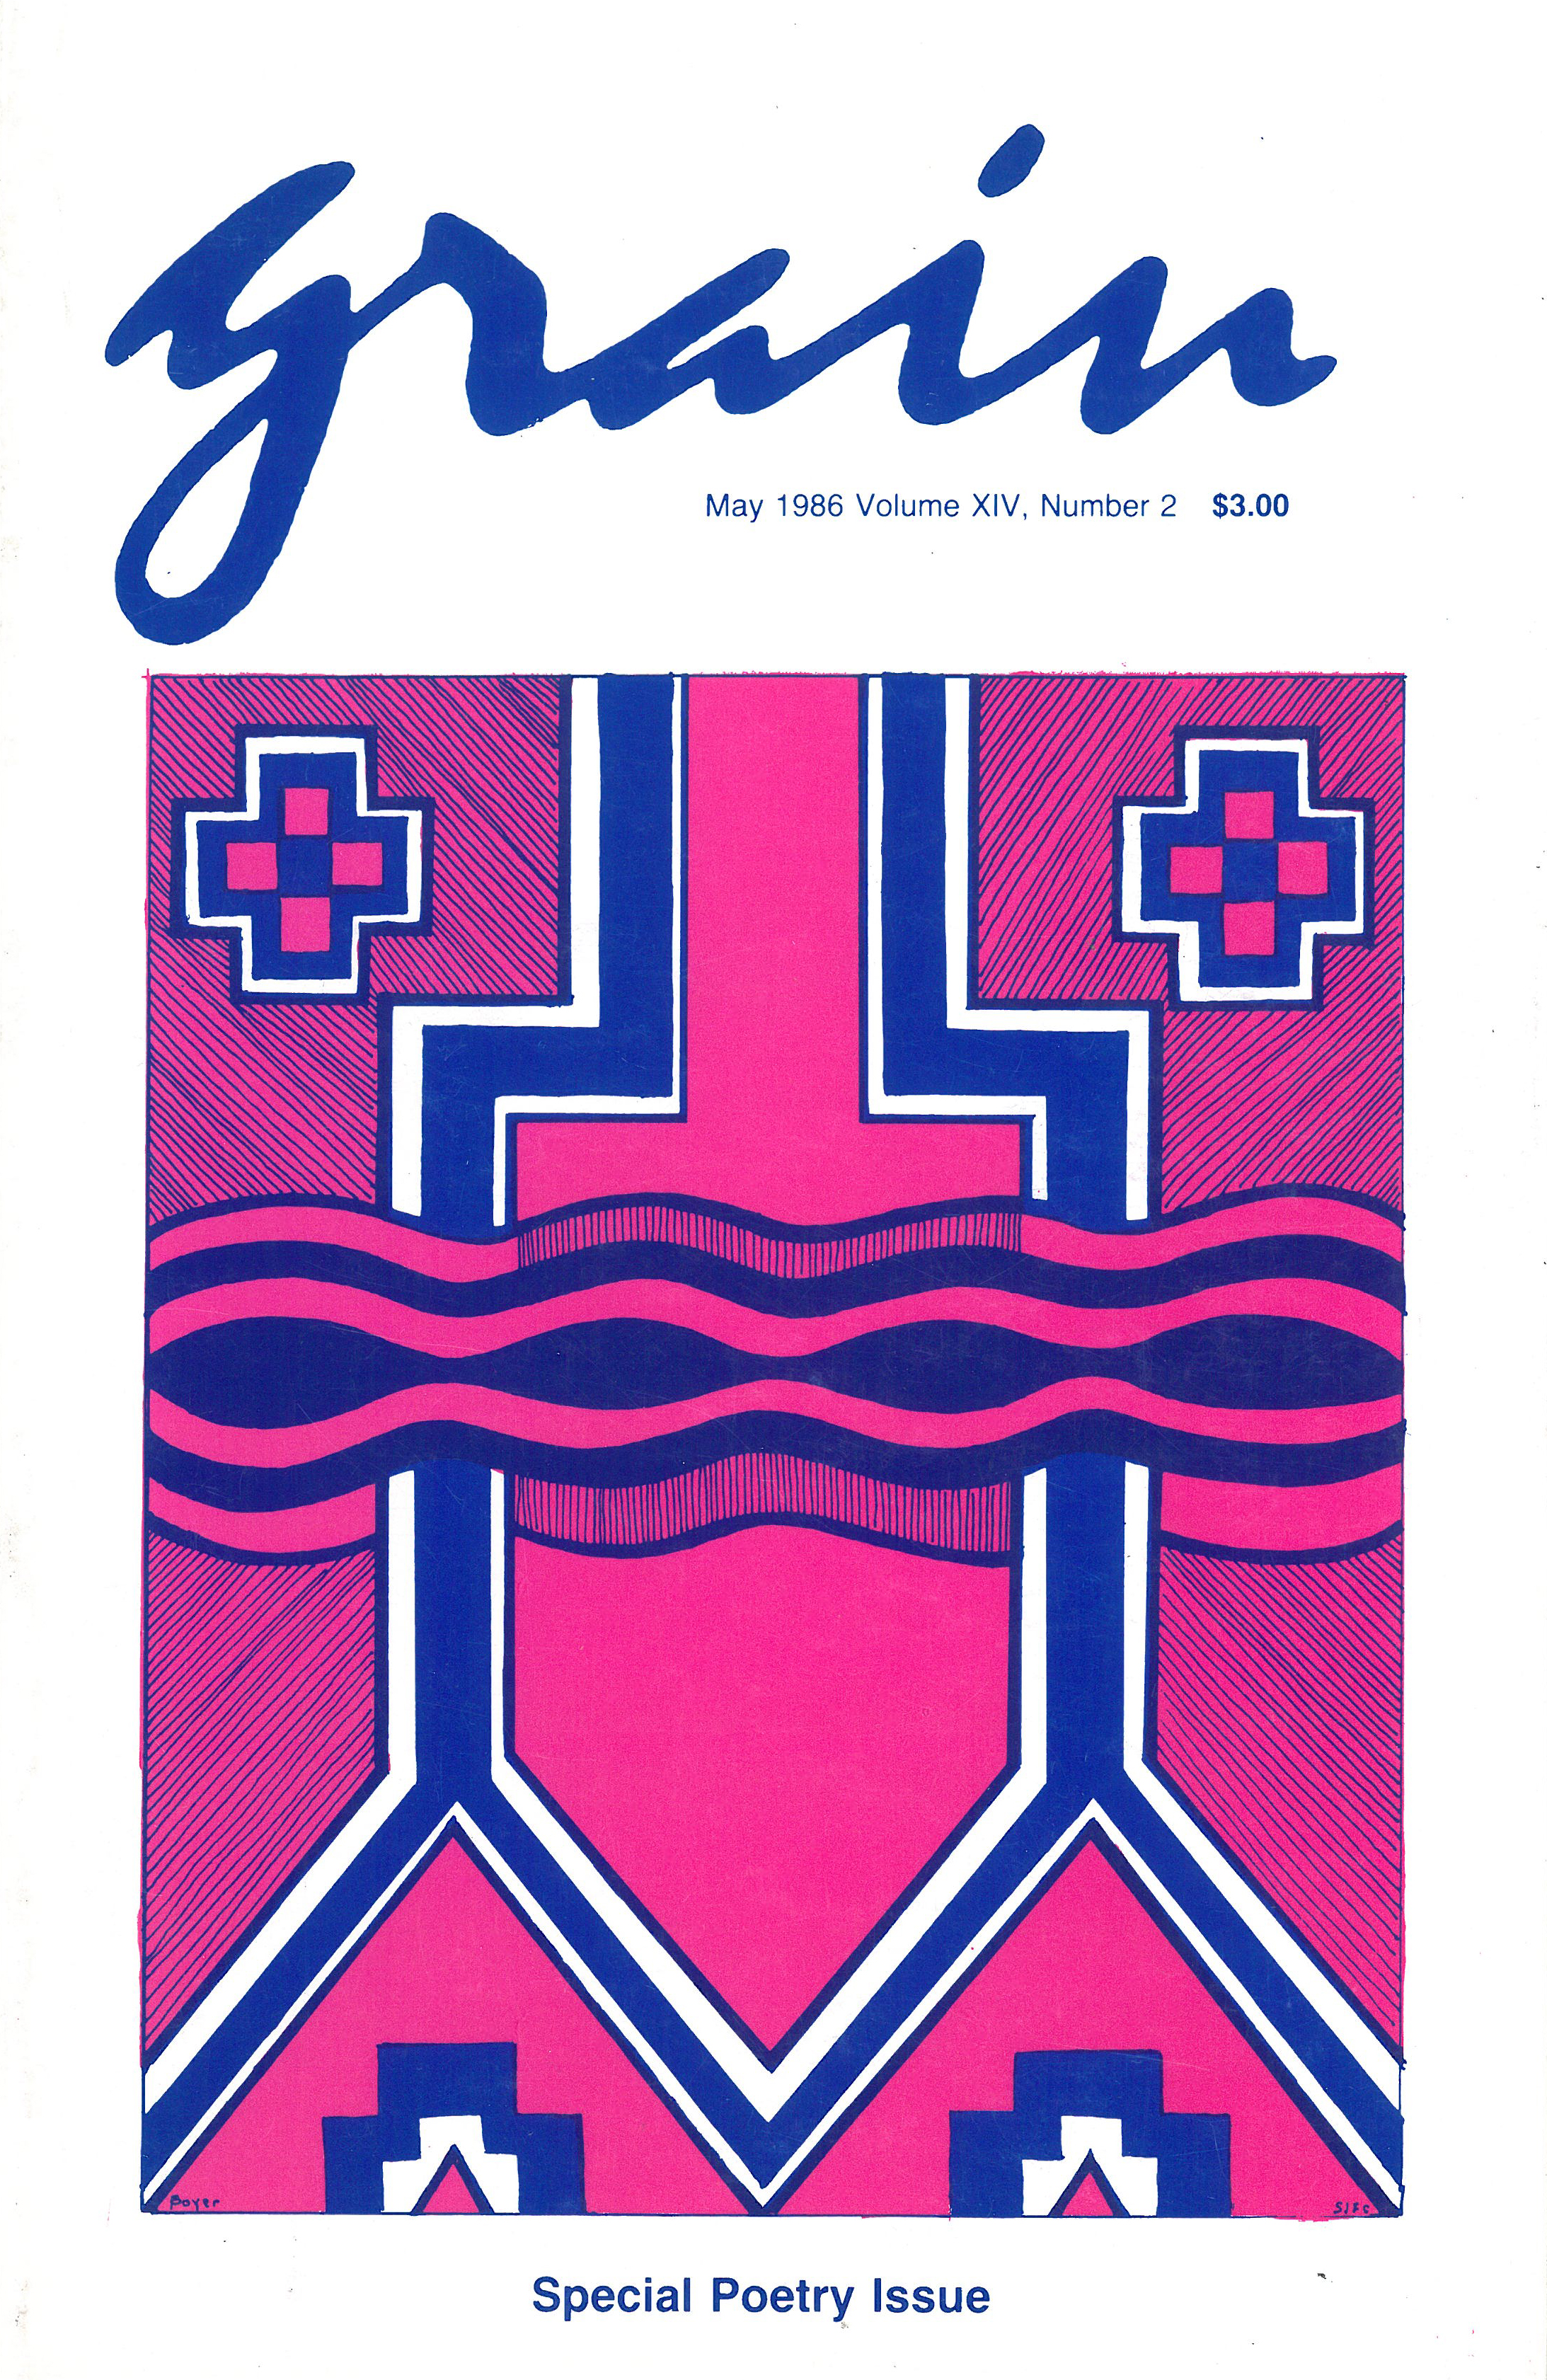 14.2 May 1986, Special Poetry Issue